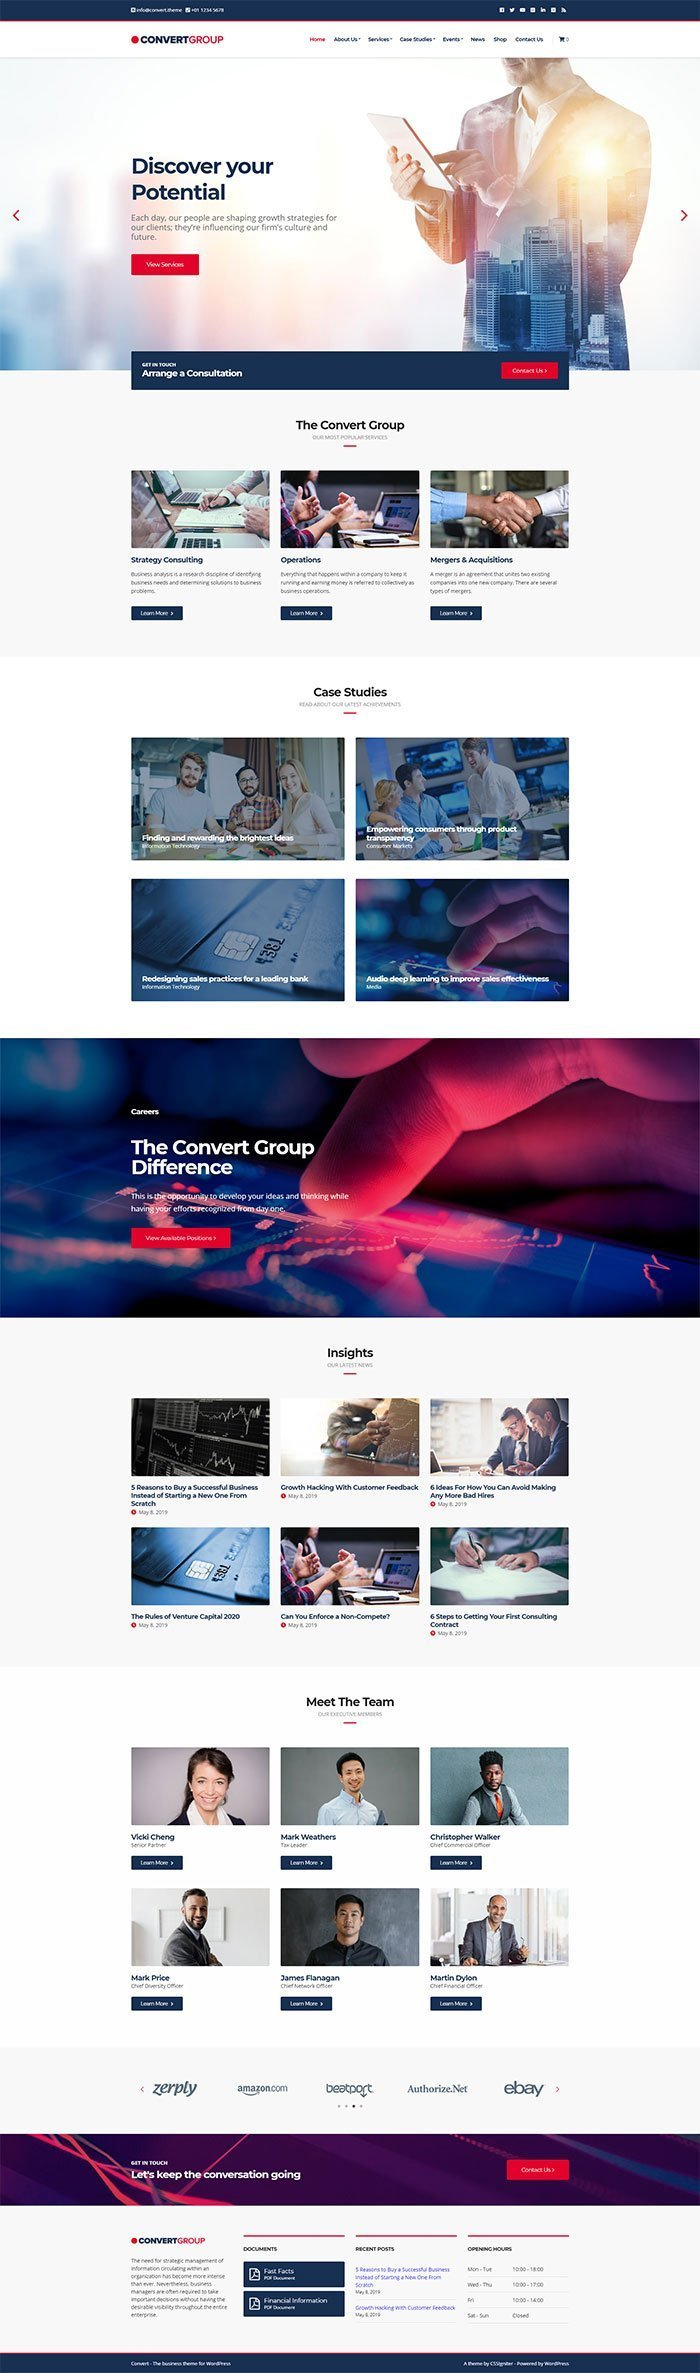 Convert - A professional business WordPress theme